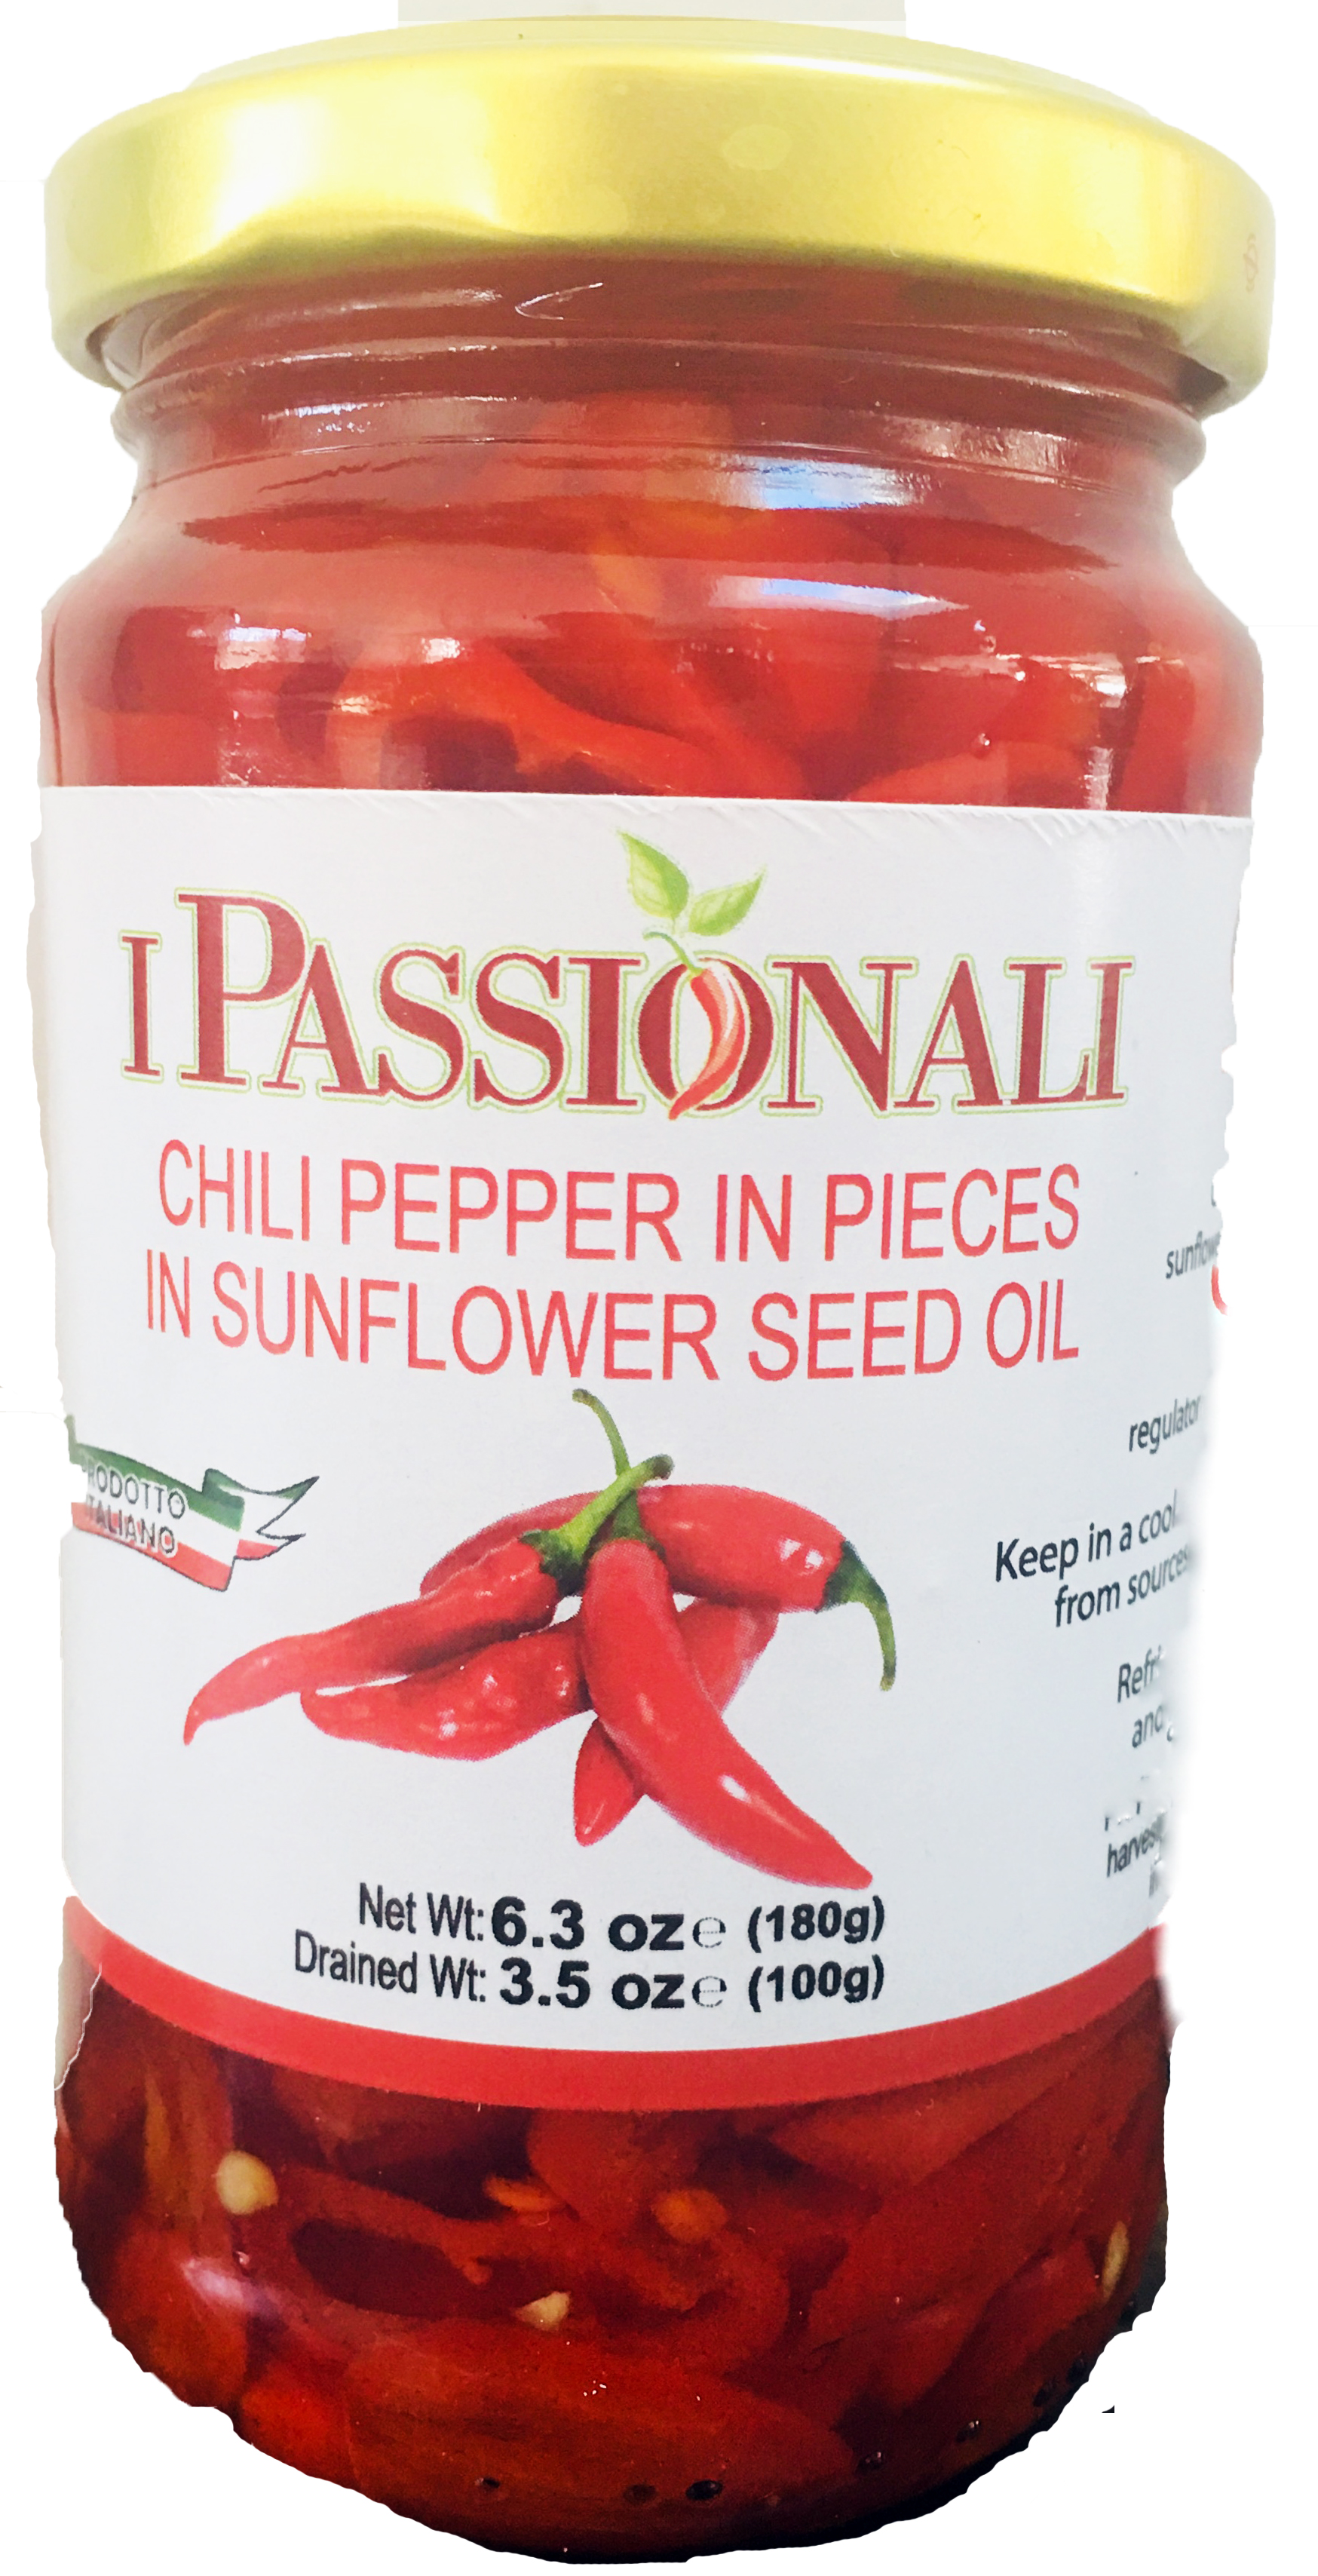 I Passionali Chili Pepper in Sunflower Seed Oil 6.3 Oz. From Calabria Image